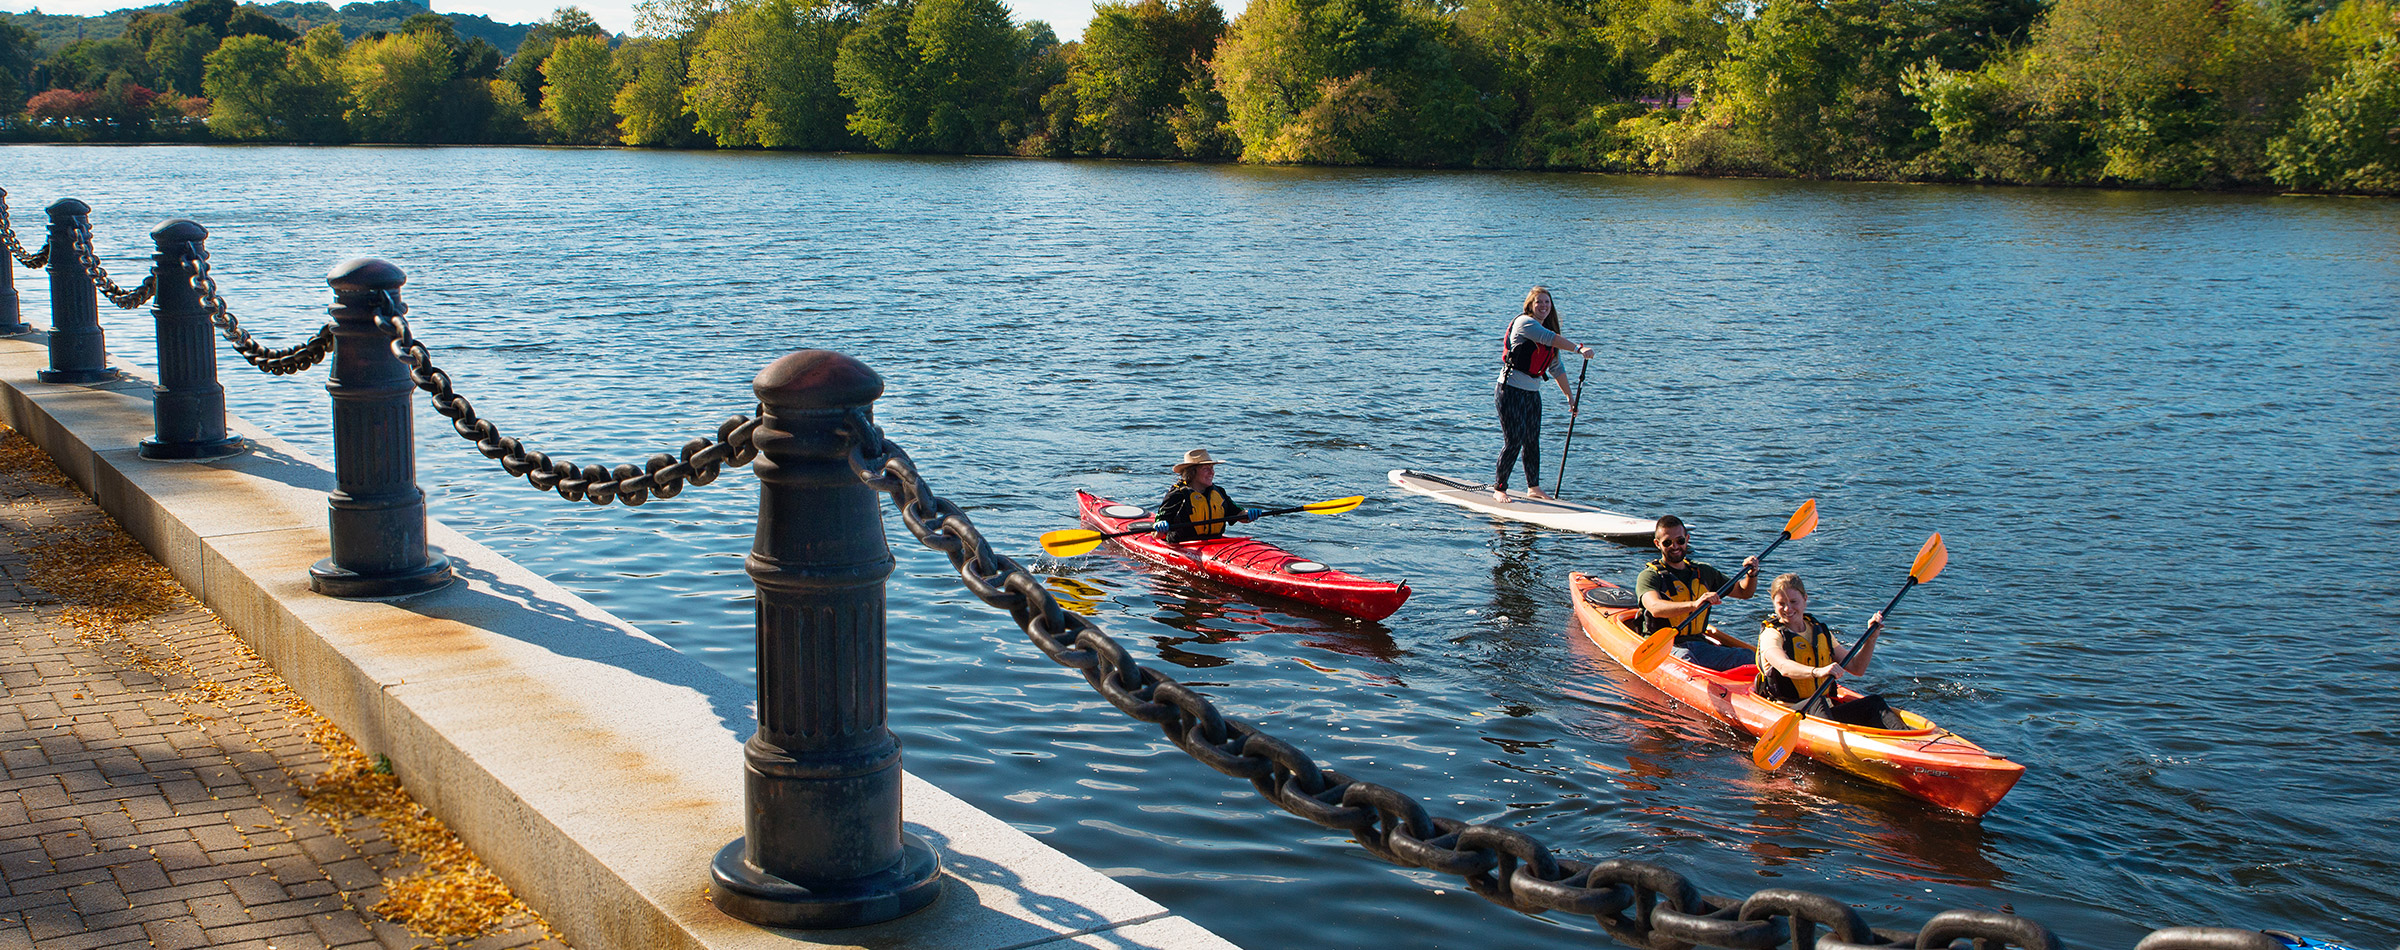 Come paddle the Charles River with Paddle Boston! The best place to kayak, canoe, or paddle board in Boston!